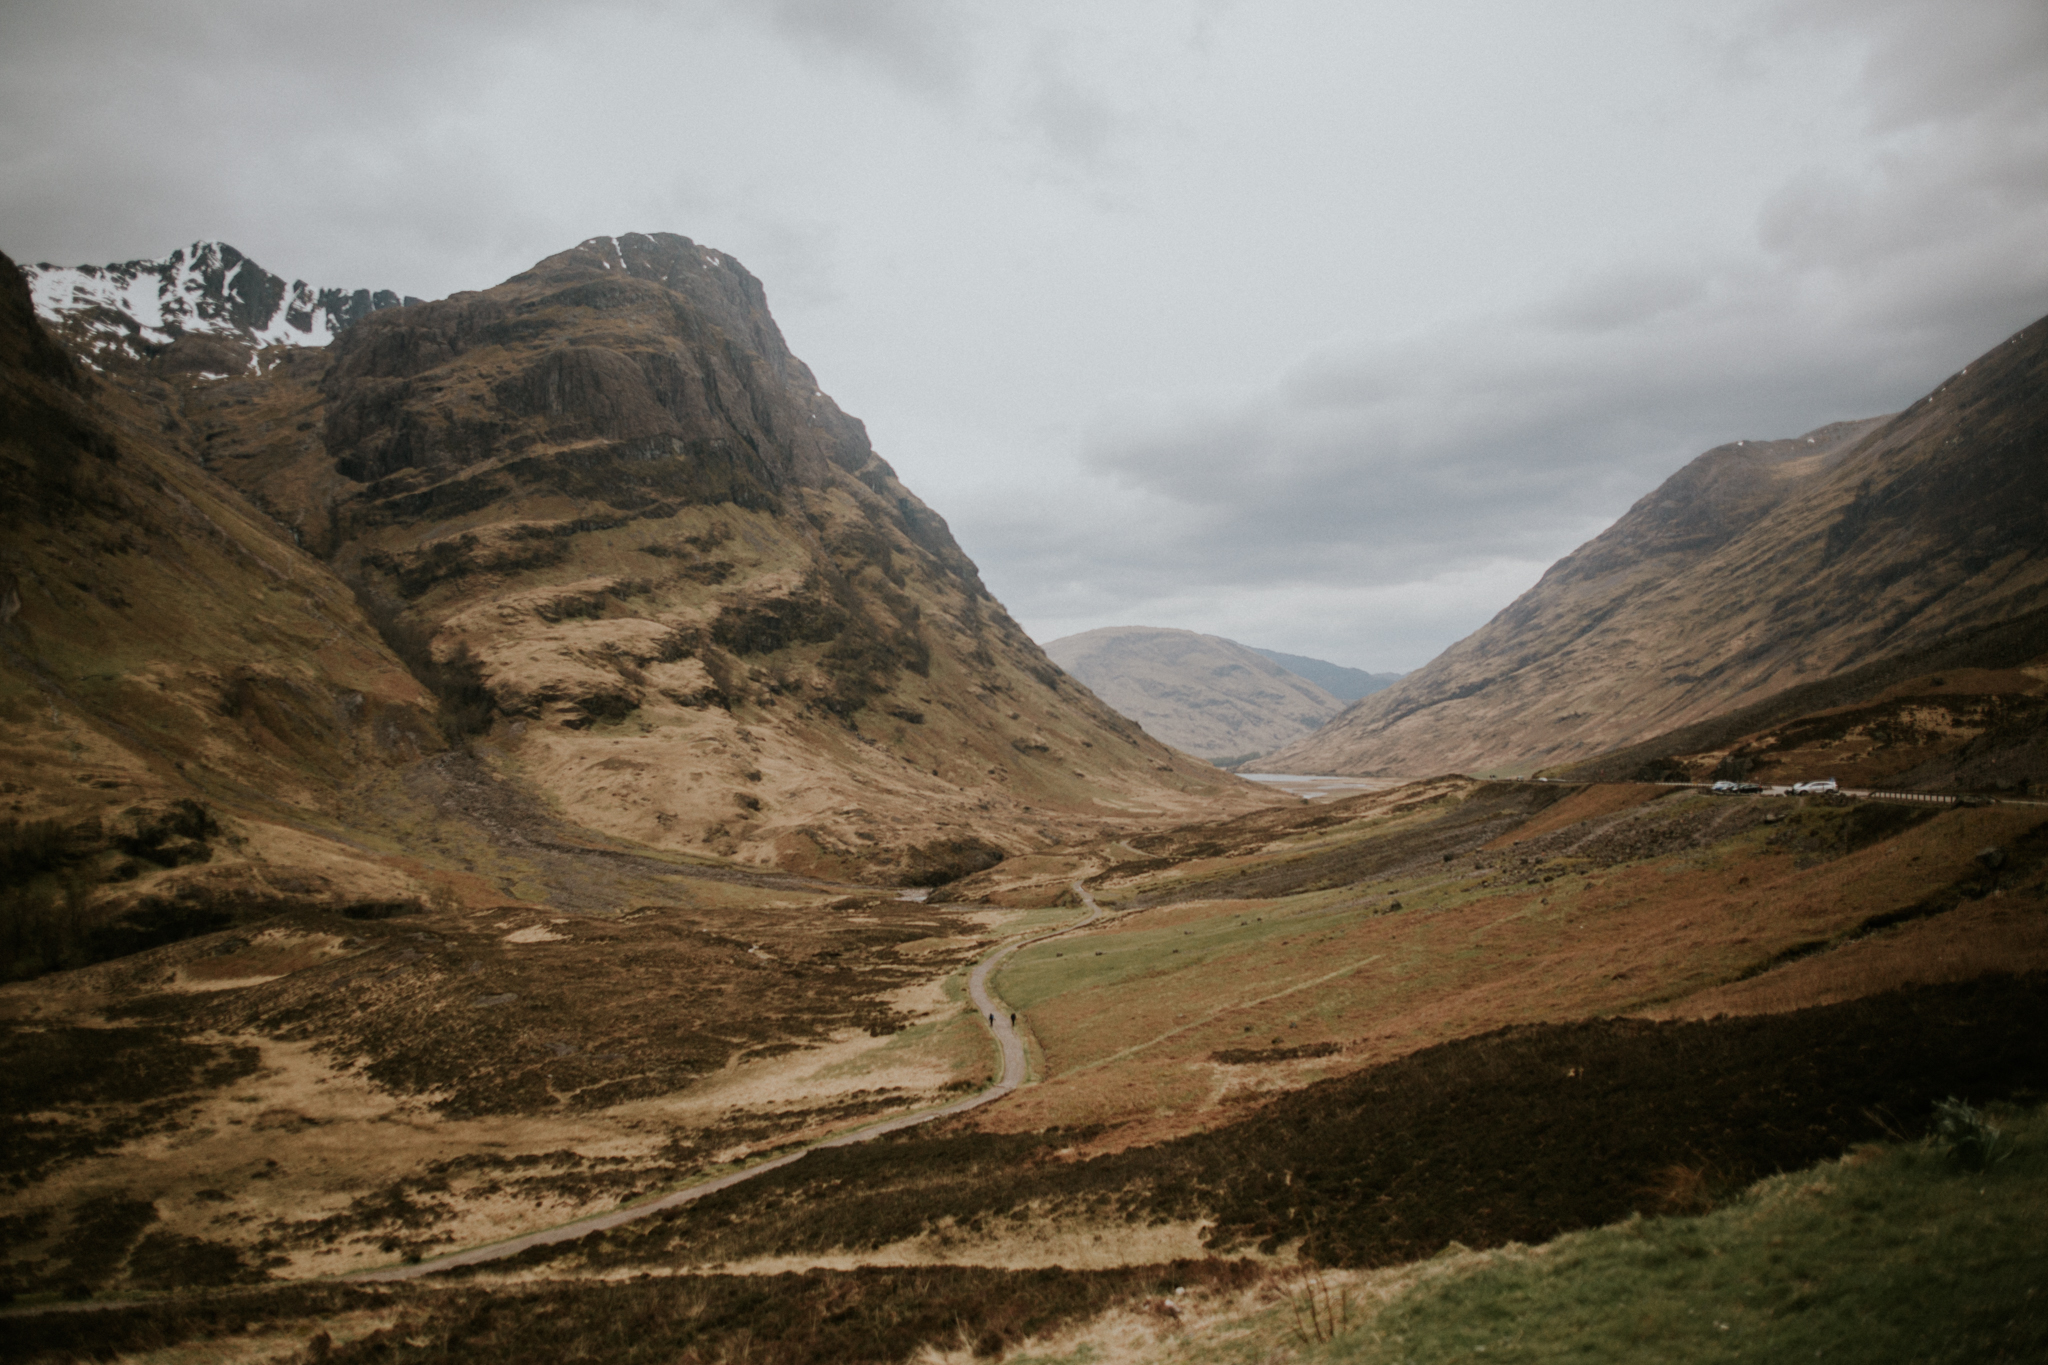 The Scottish Highland landscape of the Glencoe